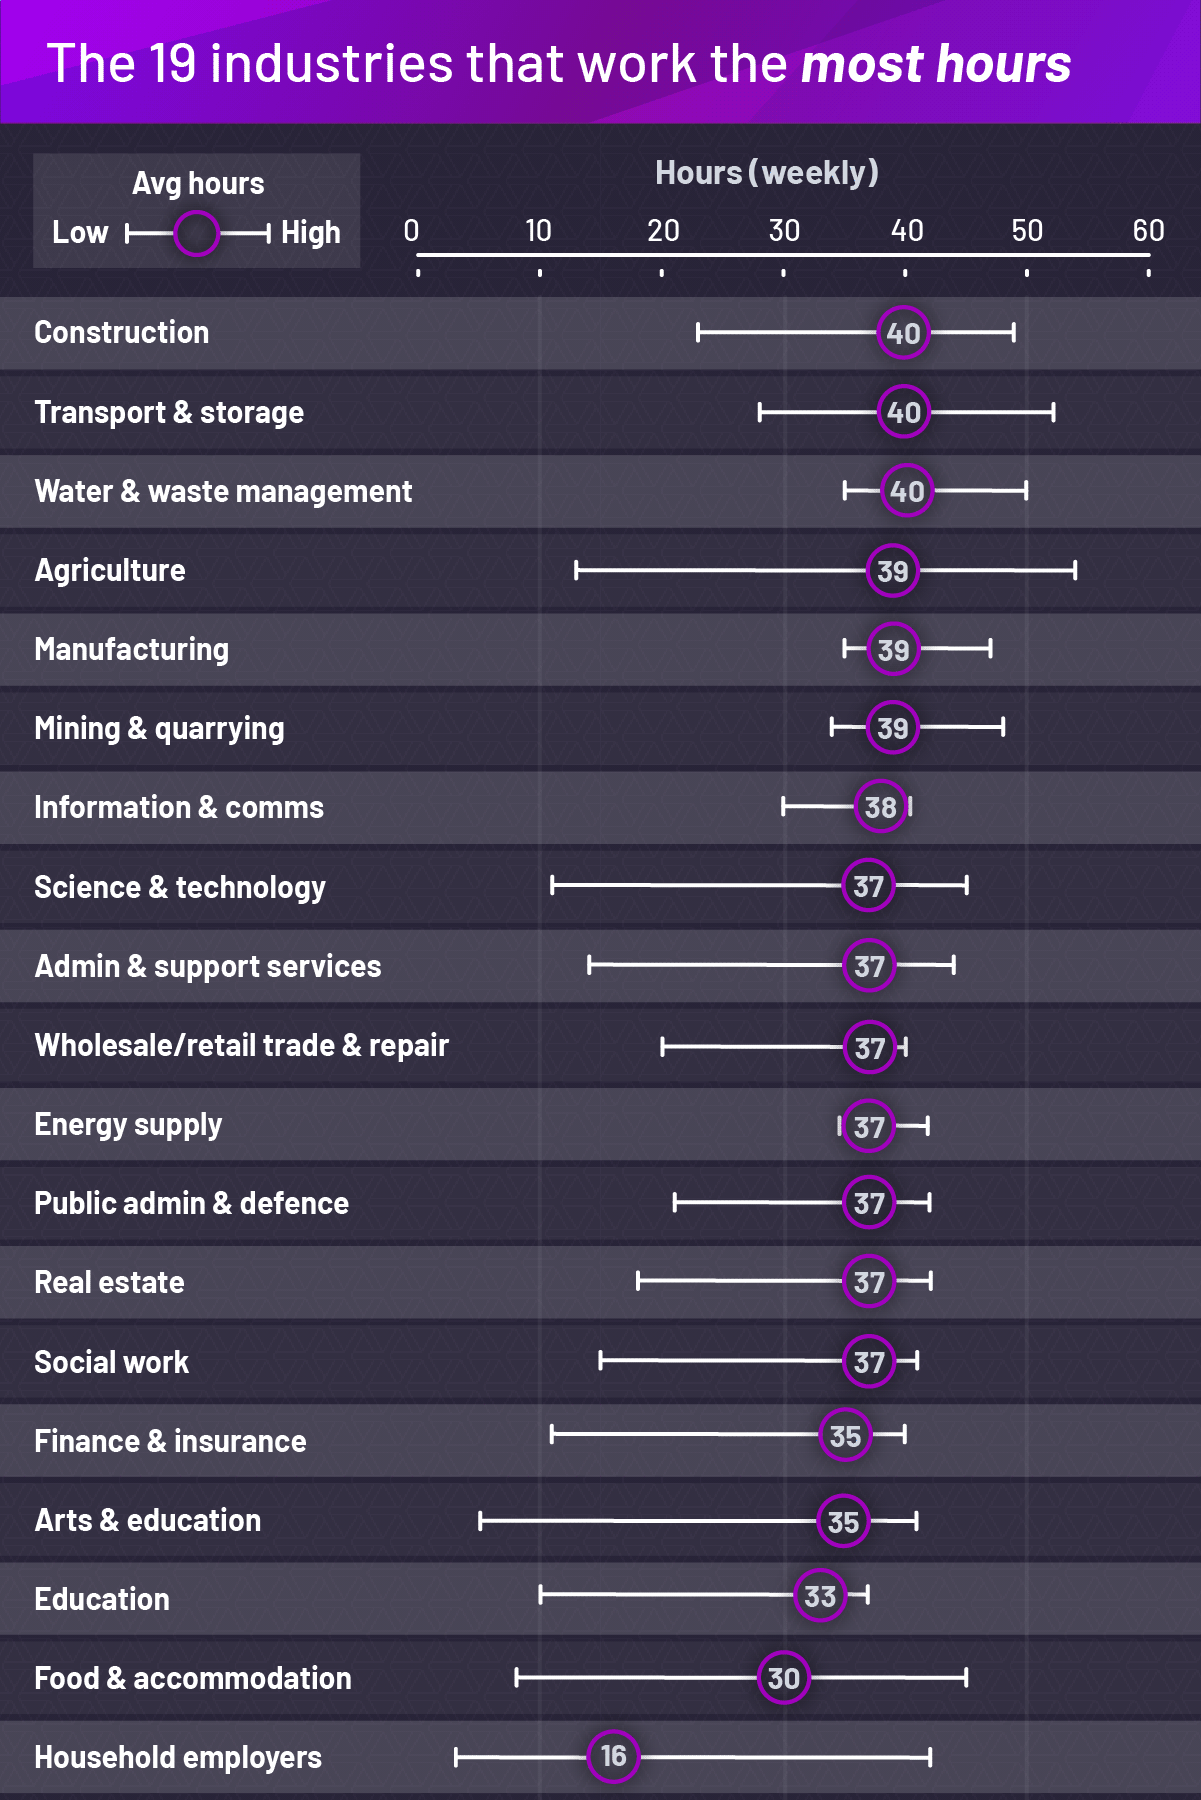 Who works the most hours by industry